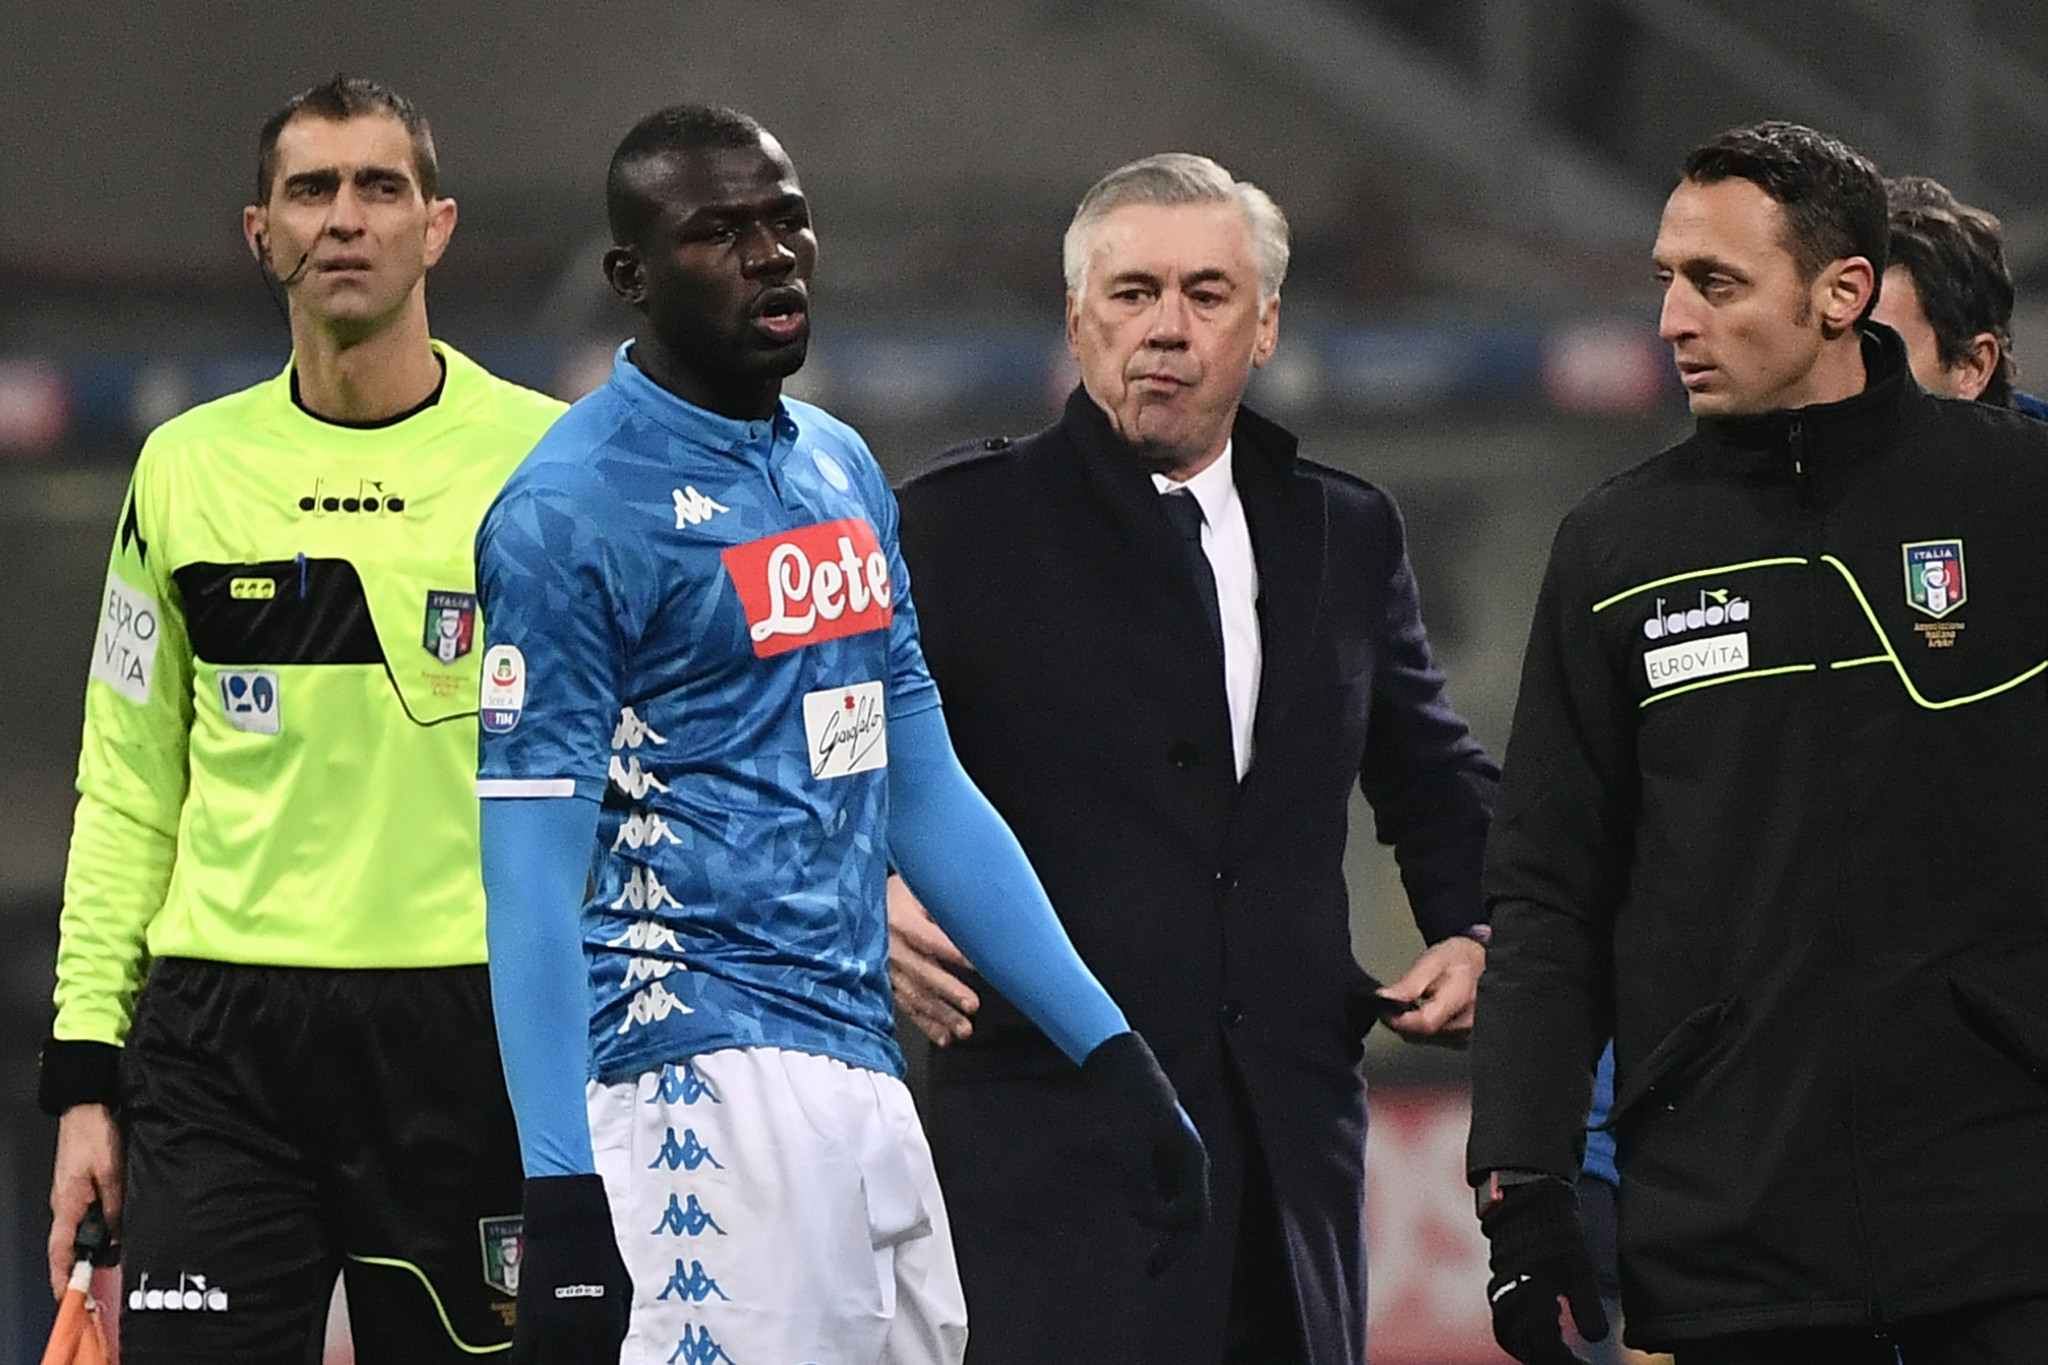 Napoli defender Kalidou Koulibaly of Senegal was sent off during Napoli's clash with Inter Milan, despite allegedly being subject to racist abuse ©Getty Images